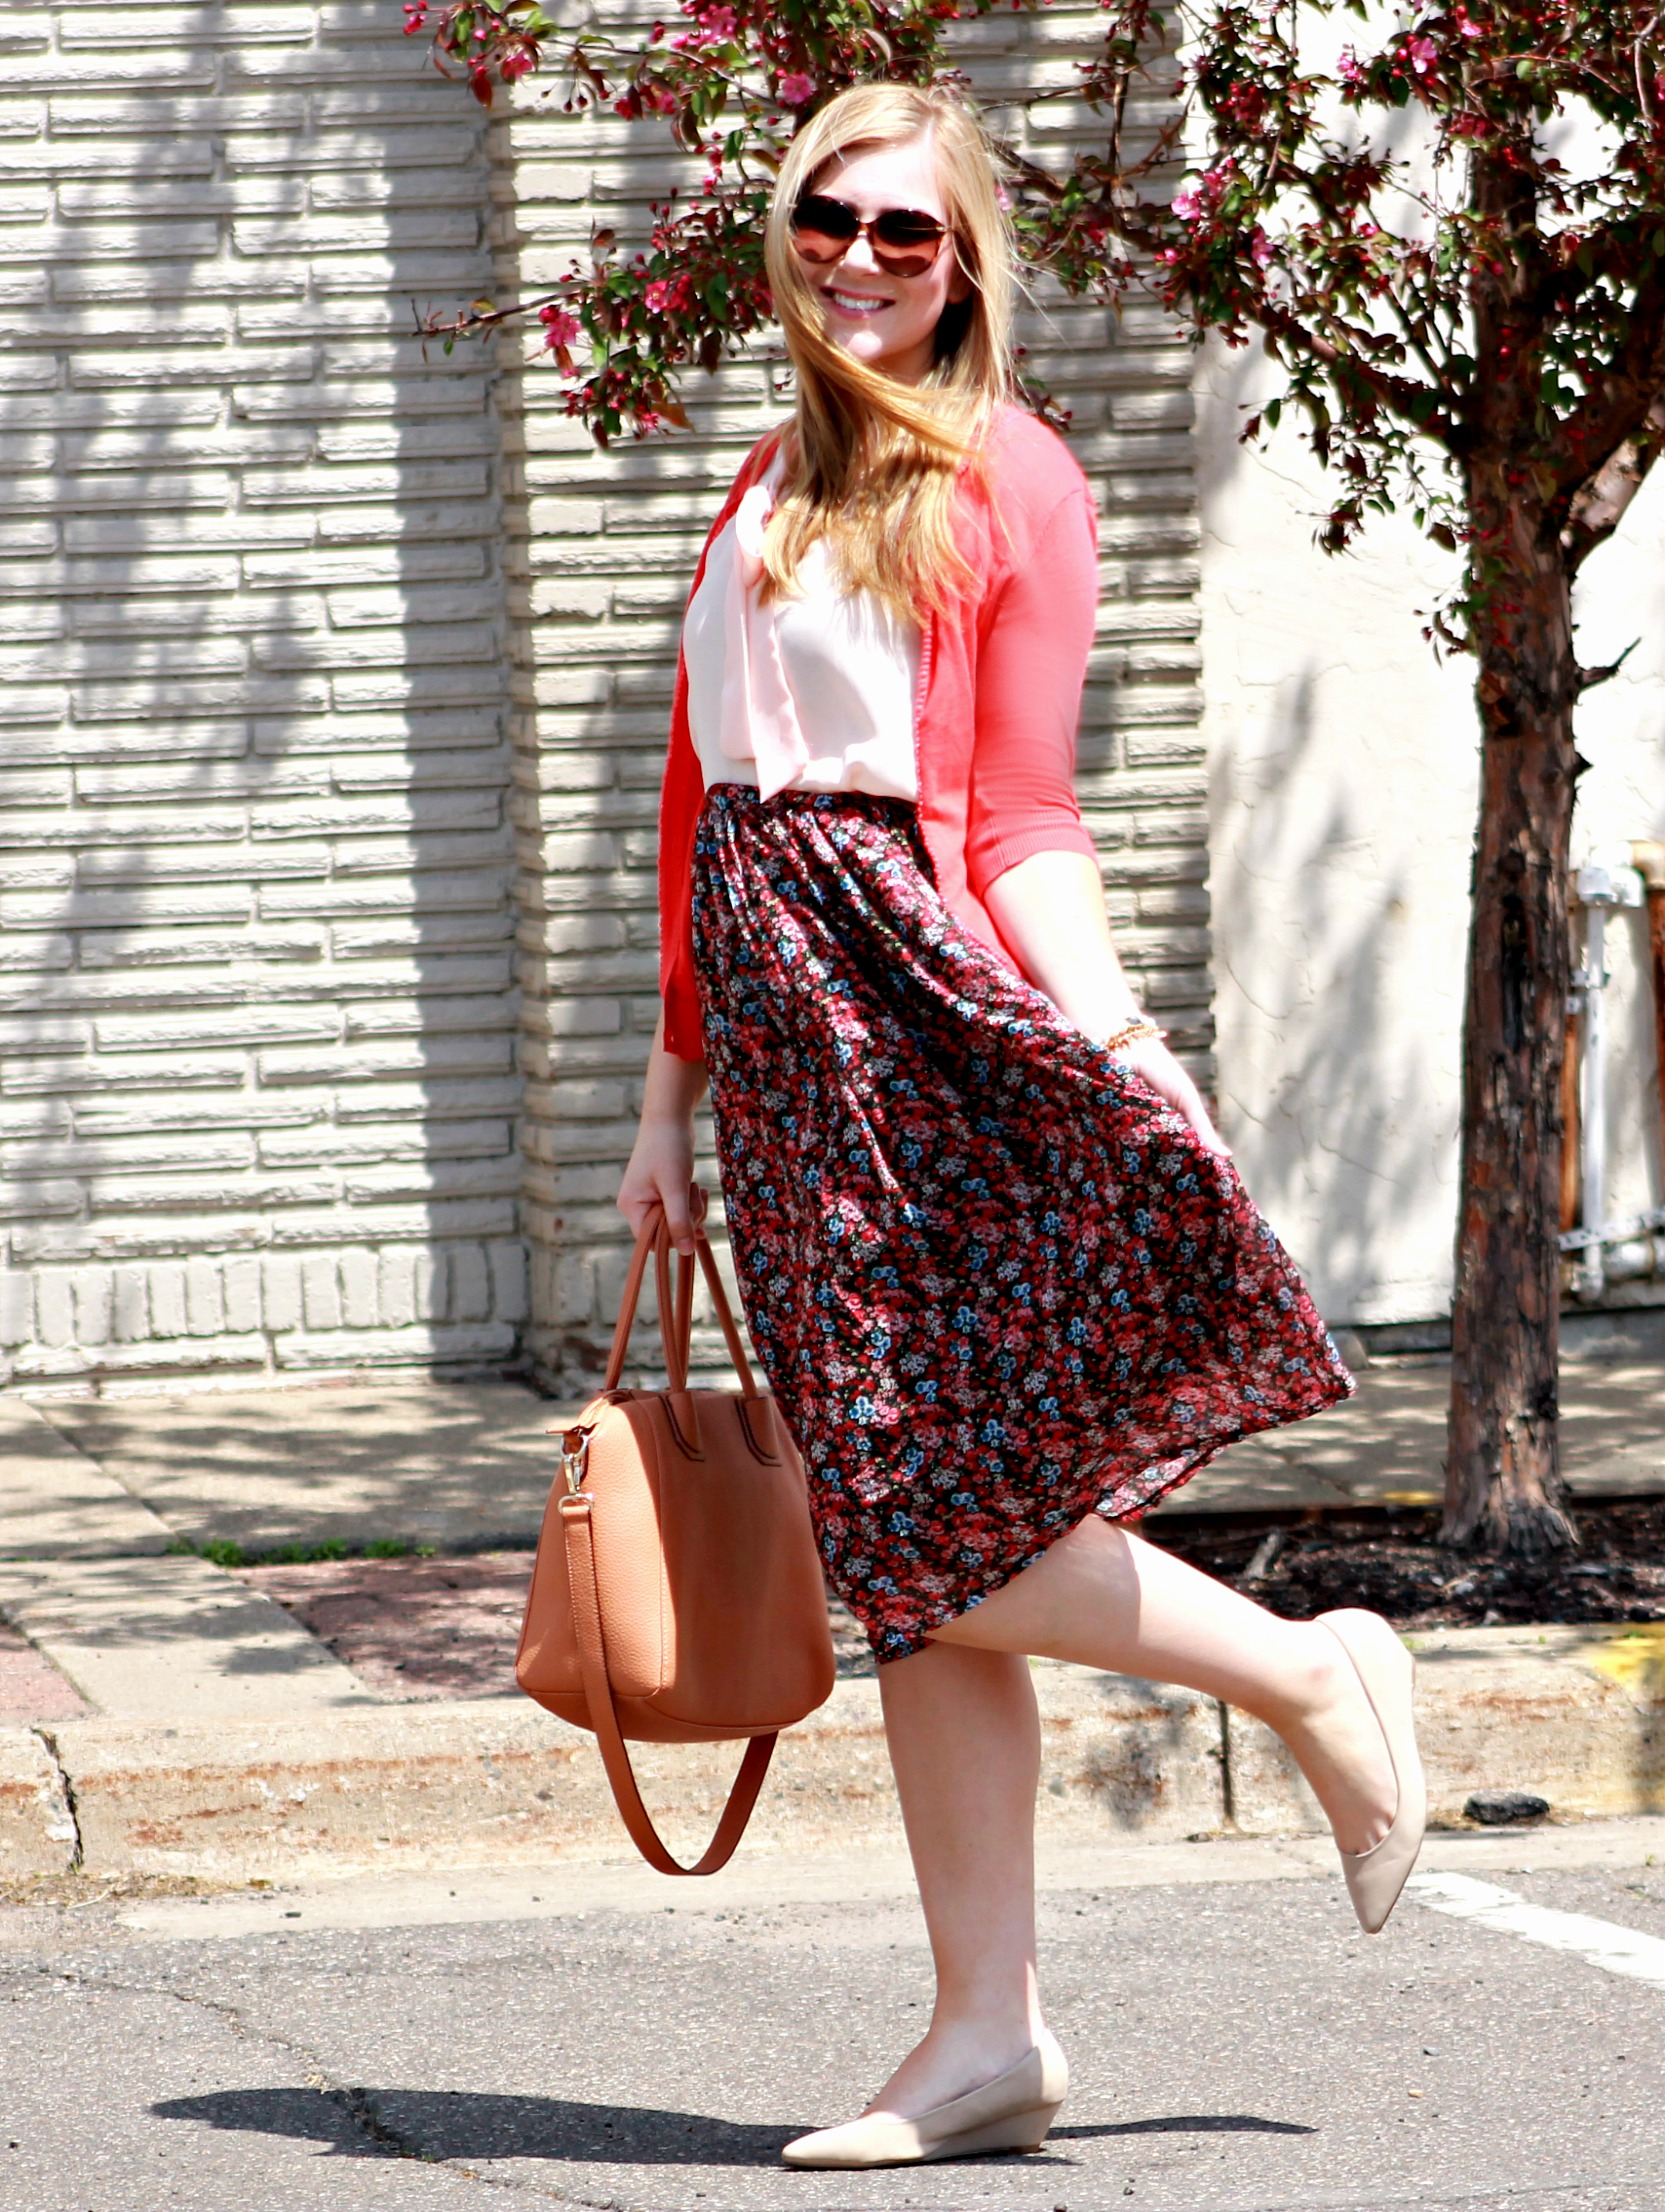 Floral Print Skirt + Bow-Tie Top + Coral Cardigan